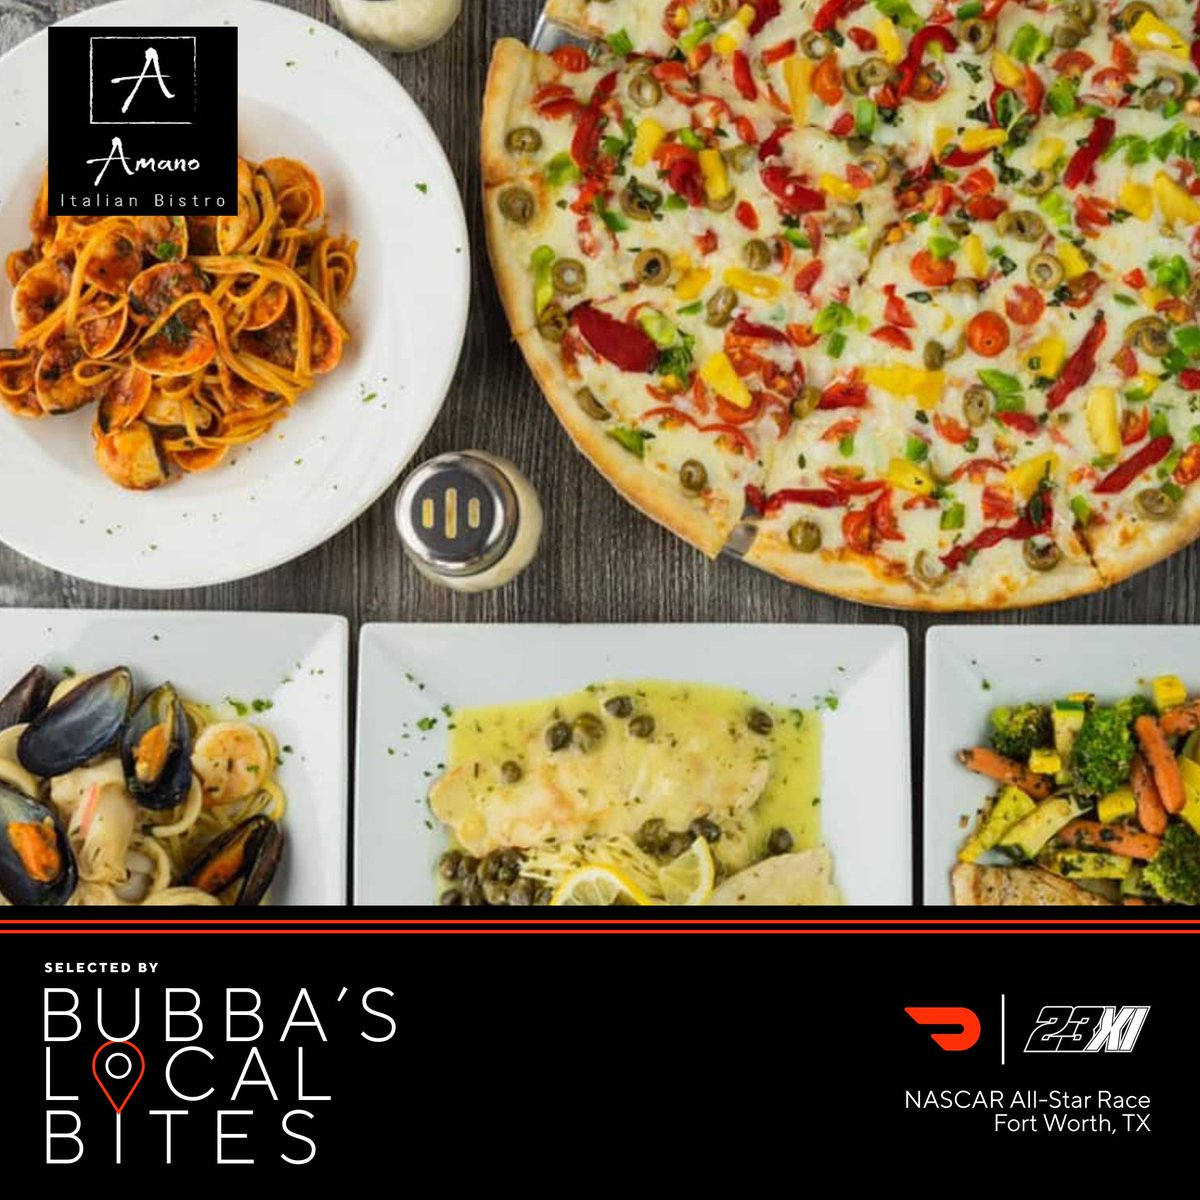 Here's the All-Star Race/Texas edition of #Bubbaslocalbites to keep you fueled up!  - Amano Italian Bistro: https://t.co/y4uOcSZ7Z1 - Bayou Jack's Cajun Grill: https://t.co/MUifGlM0Hz    - Doc's Street Grill: https://t.co/04bCwiRl2m - Hard Eight BBQ: https://t.co/FVr2eLj6C4 https://t.co/KPoICFTfXc